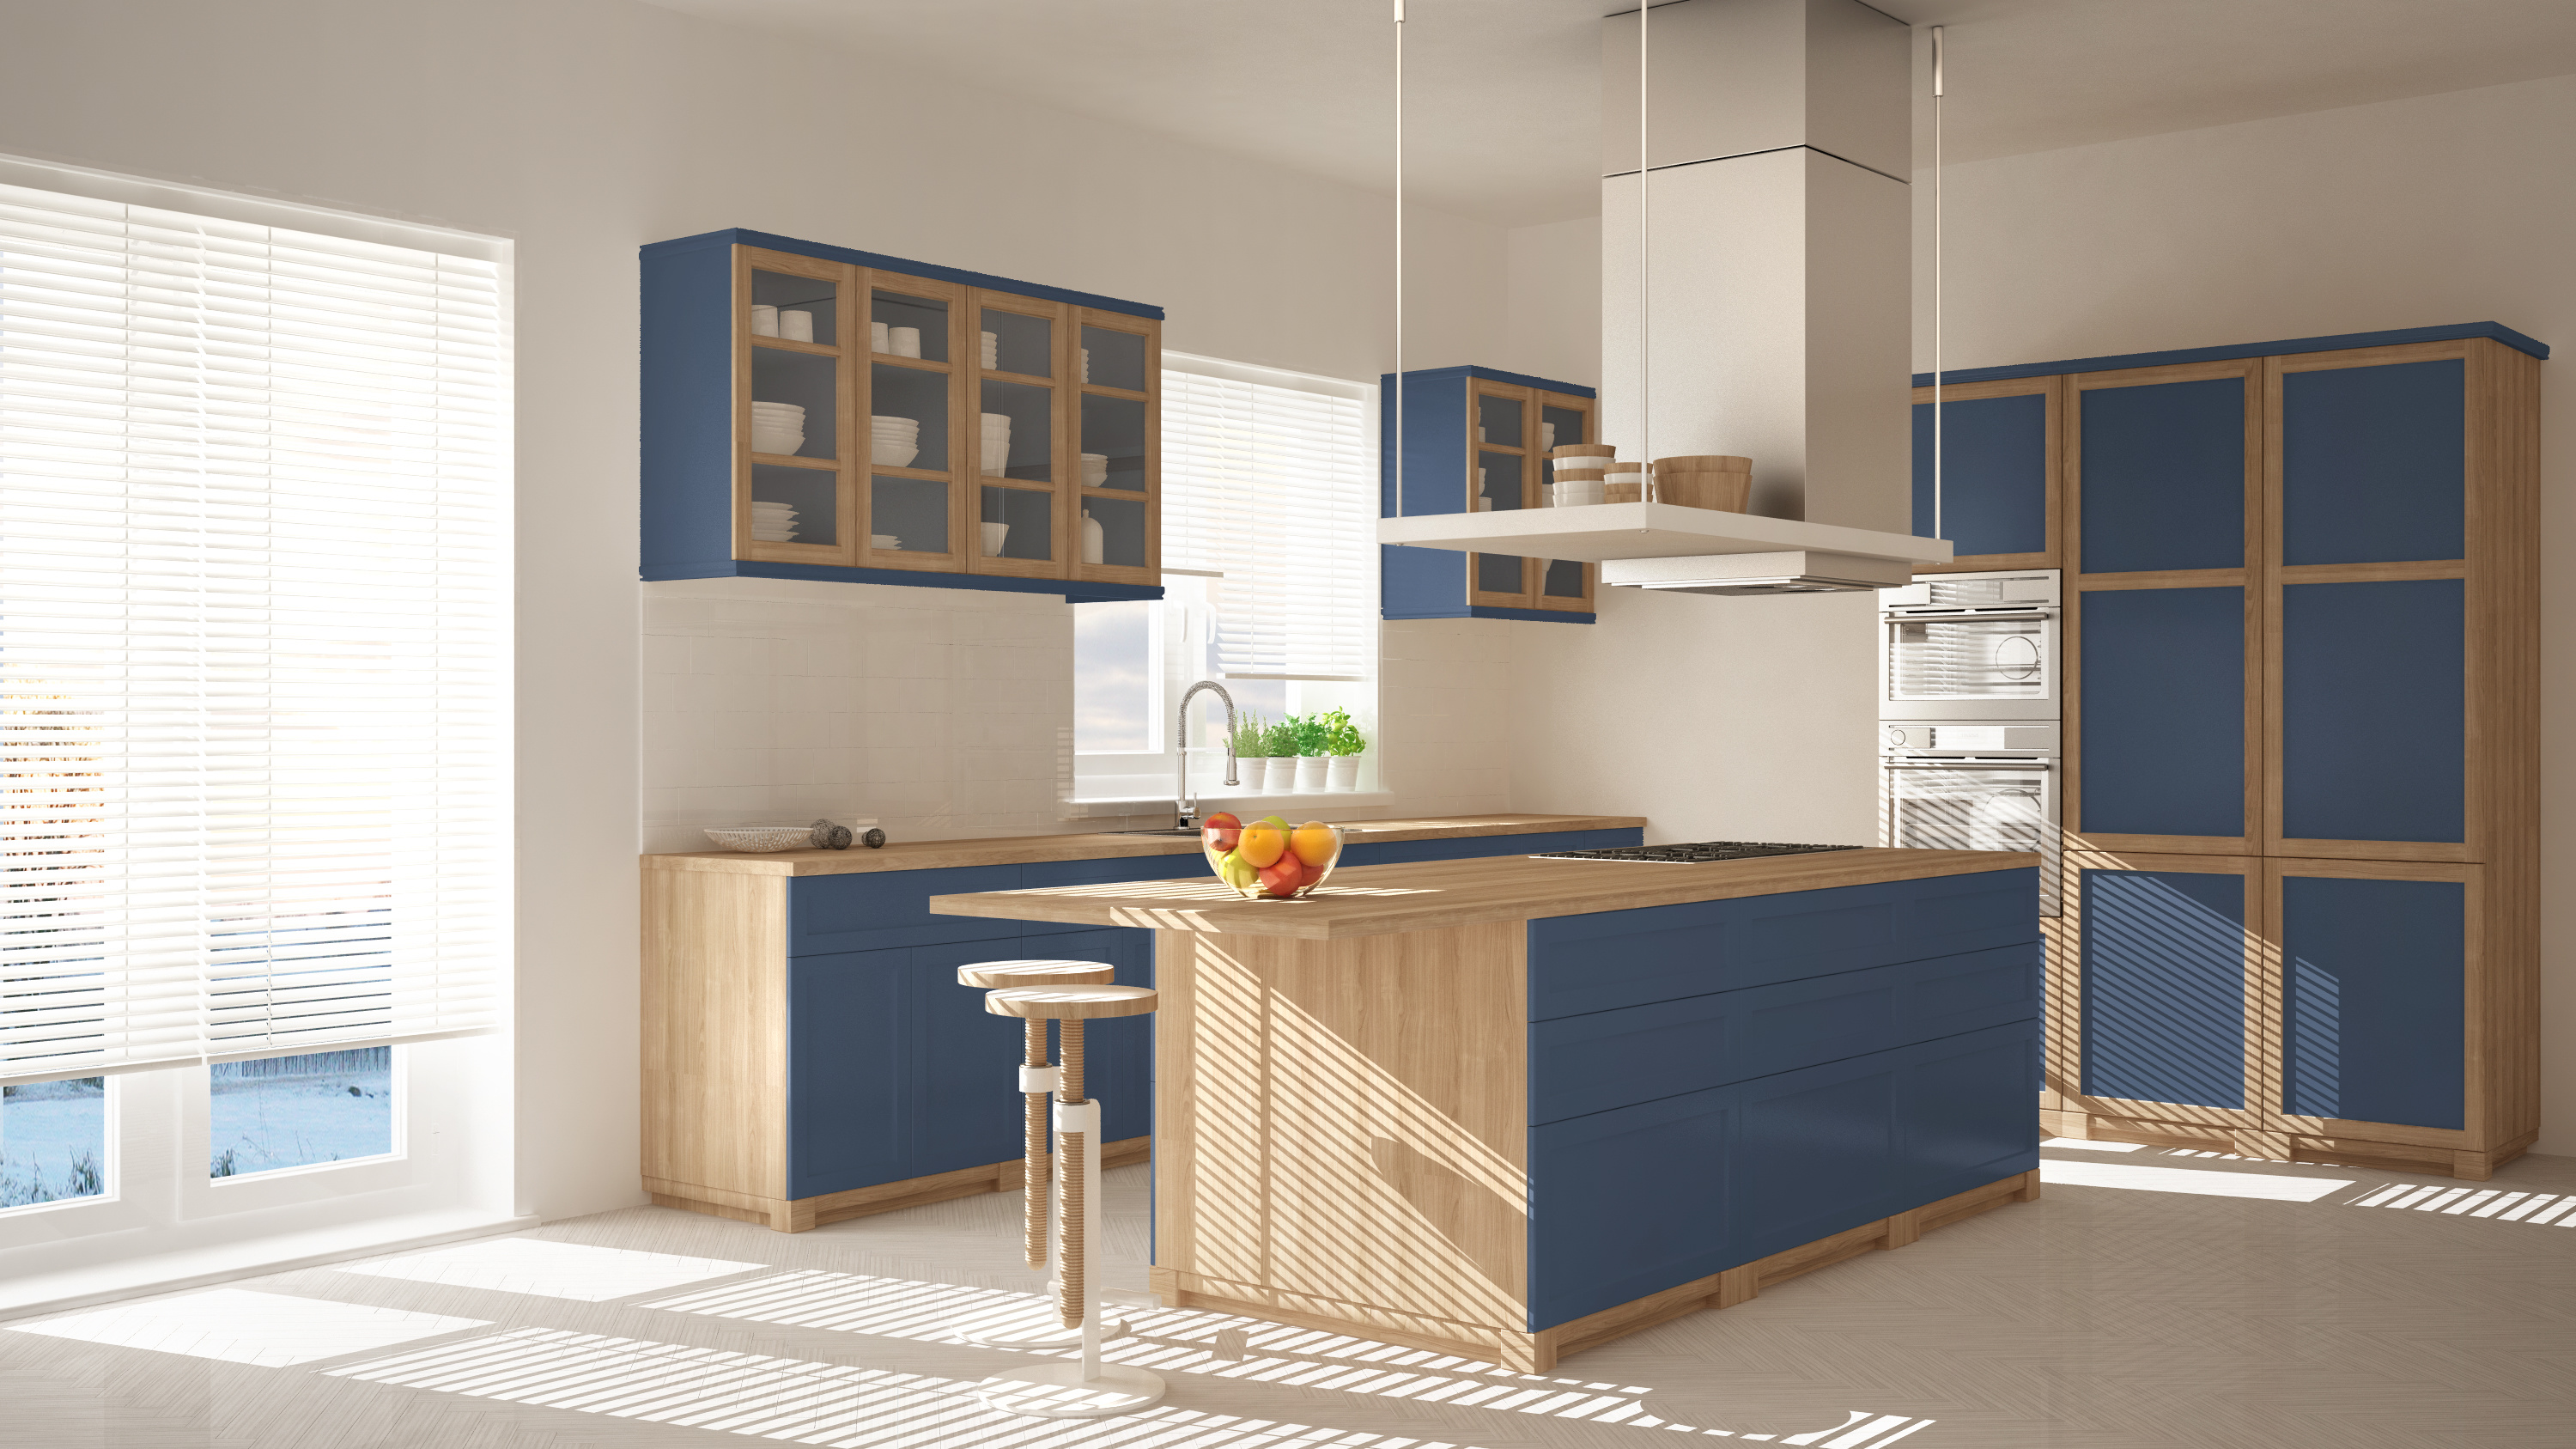 Modular Kitchen Upper Cabinets 66 Beautiful Kitchen Design Ideas For The Heart Of Your Home